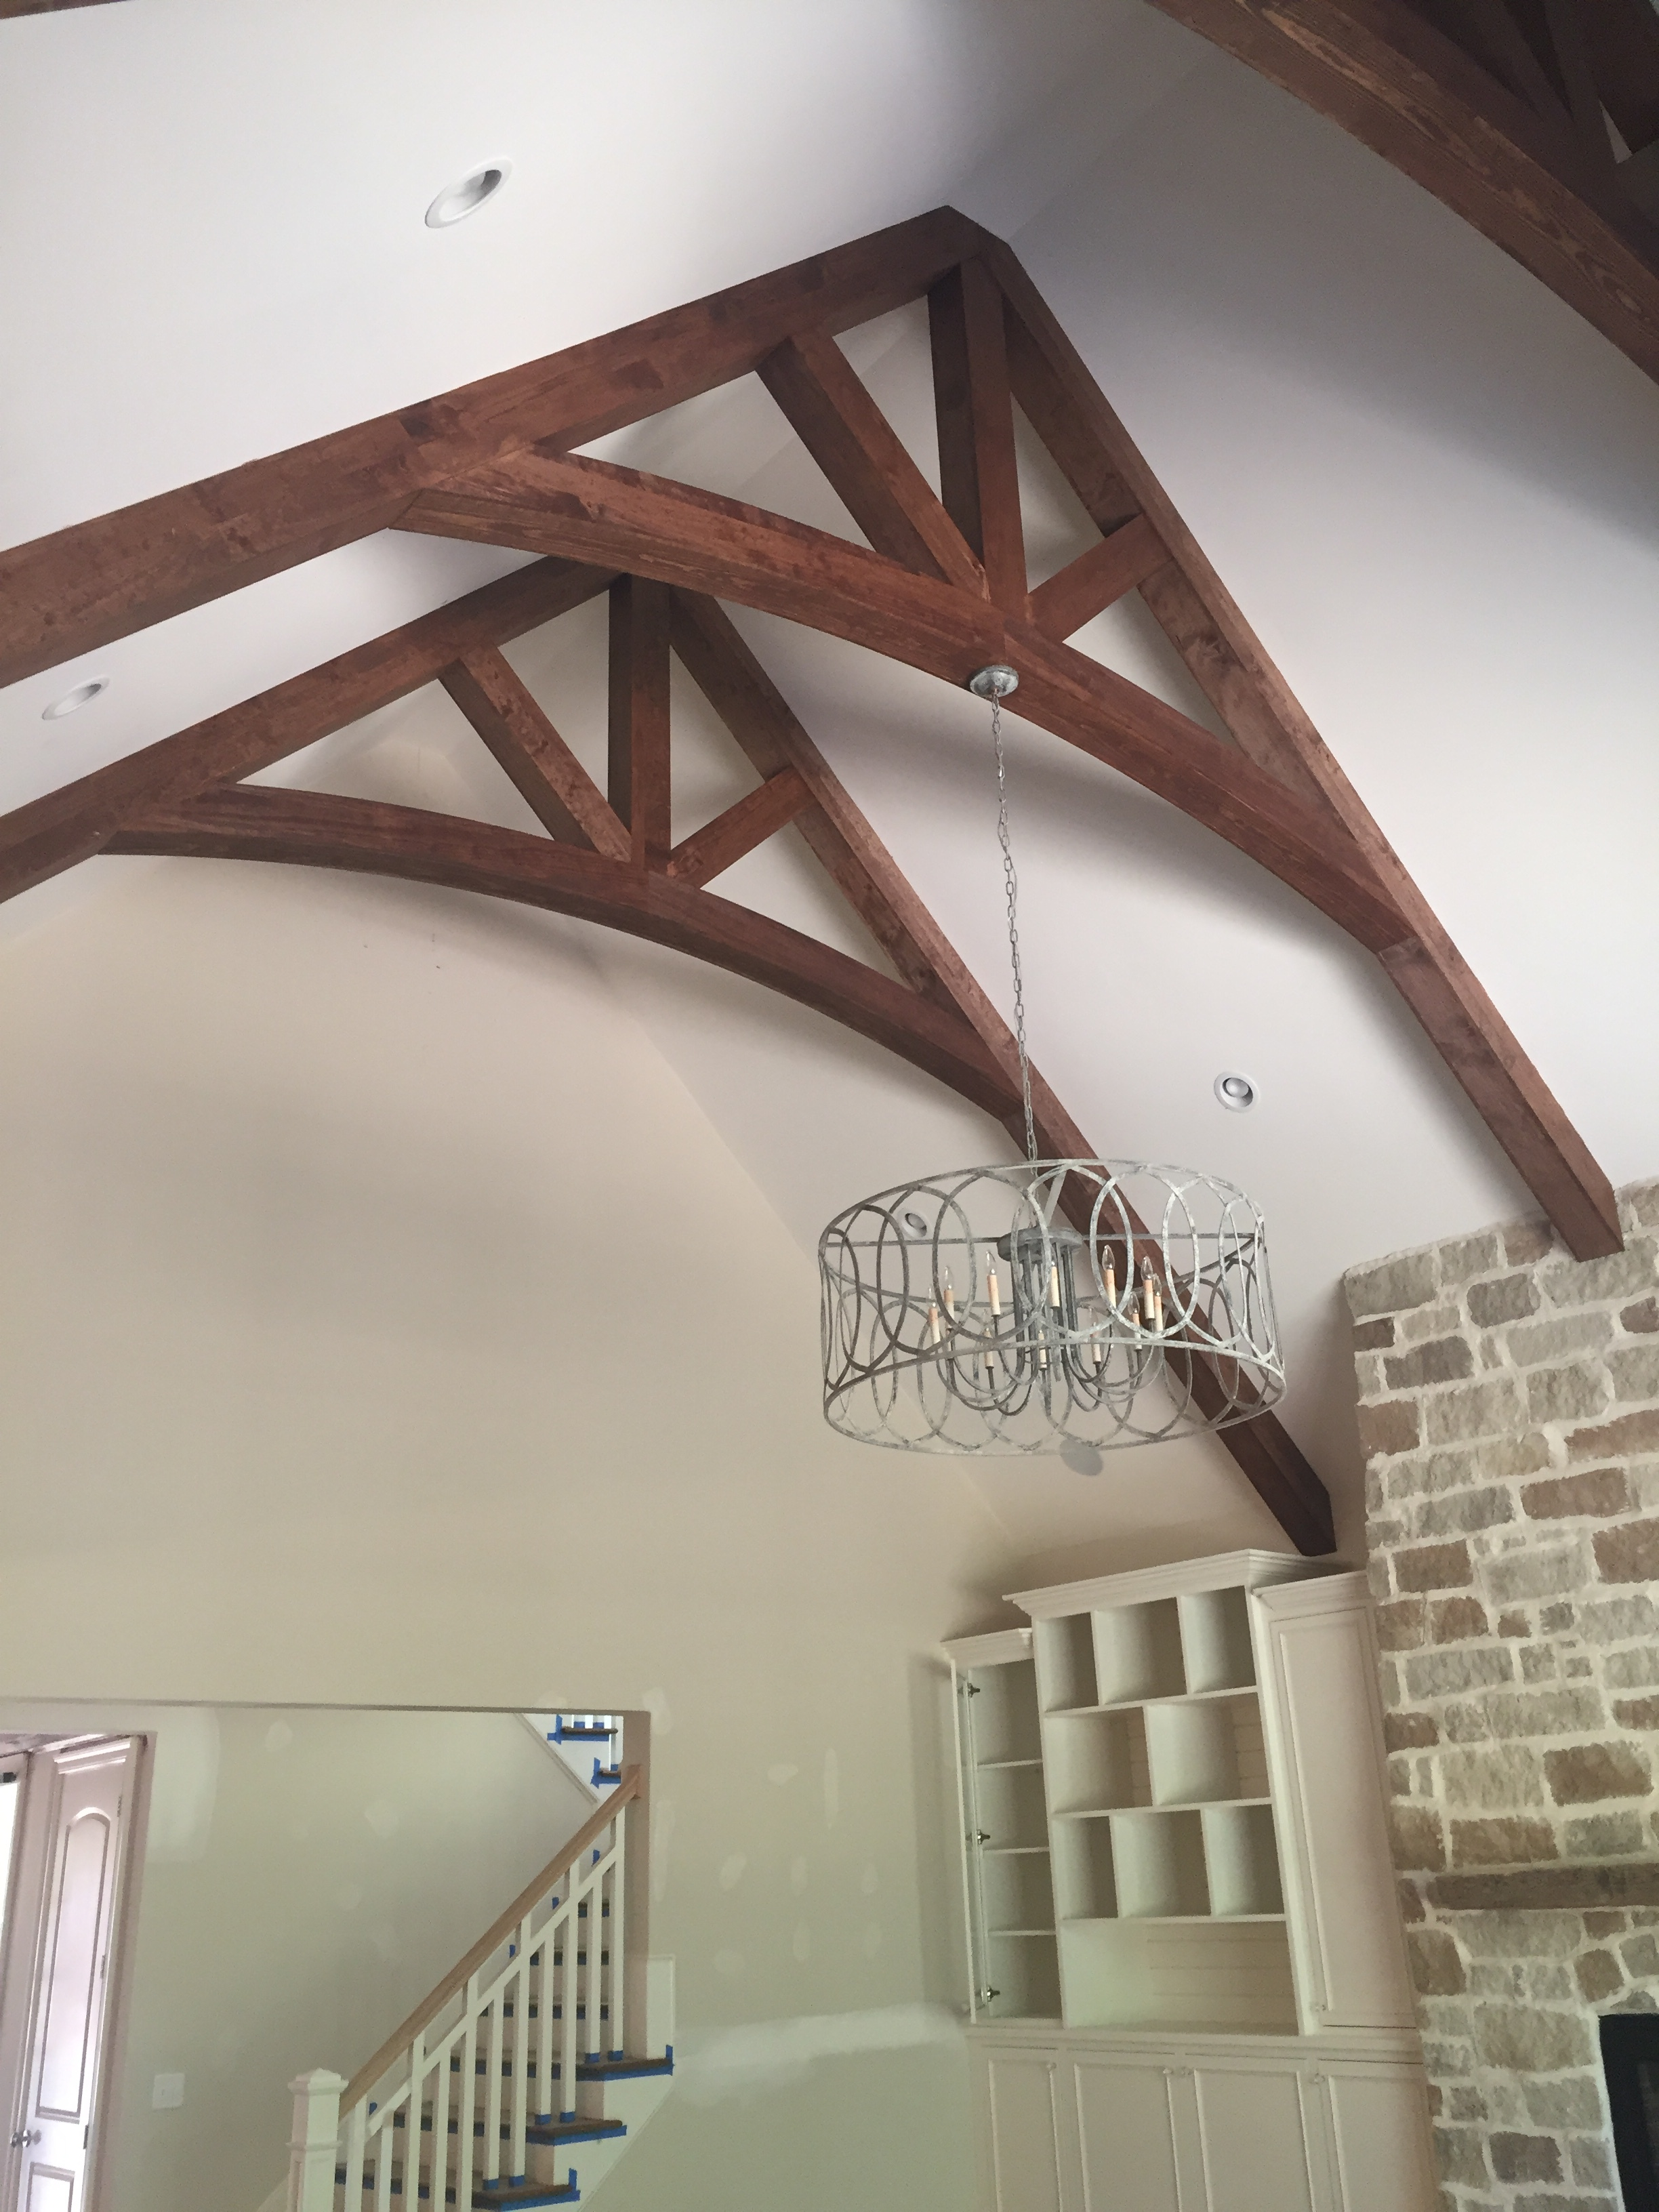 ARched Ceiling Beams - Pine